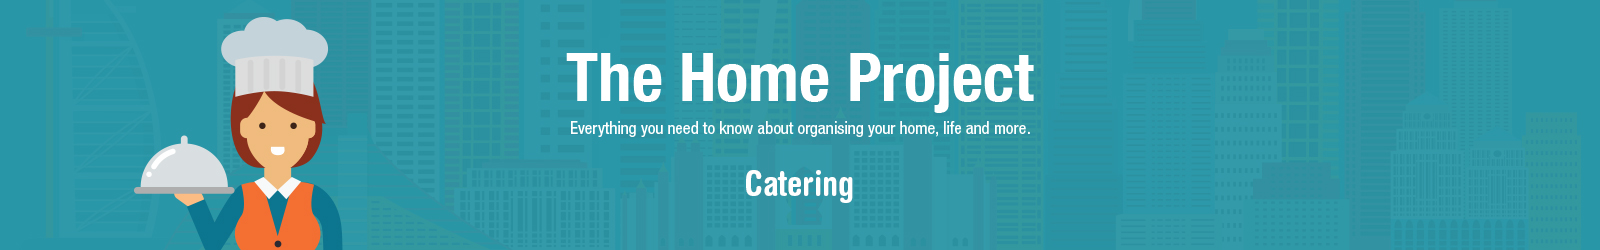 Project home catering